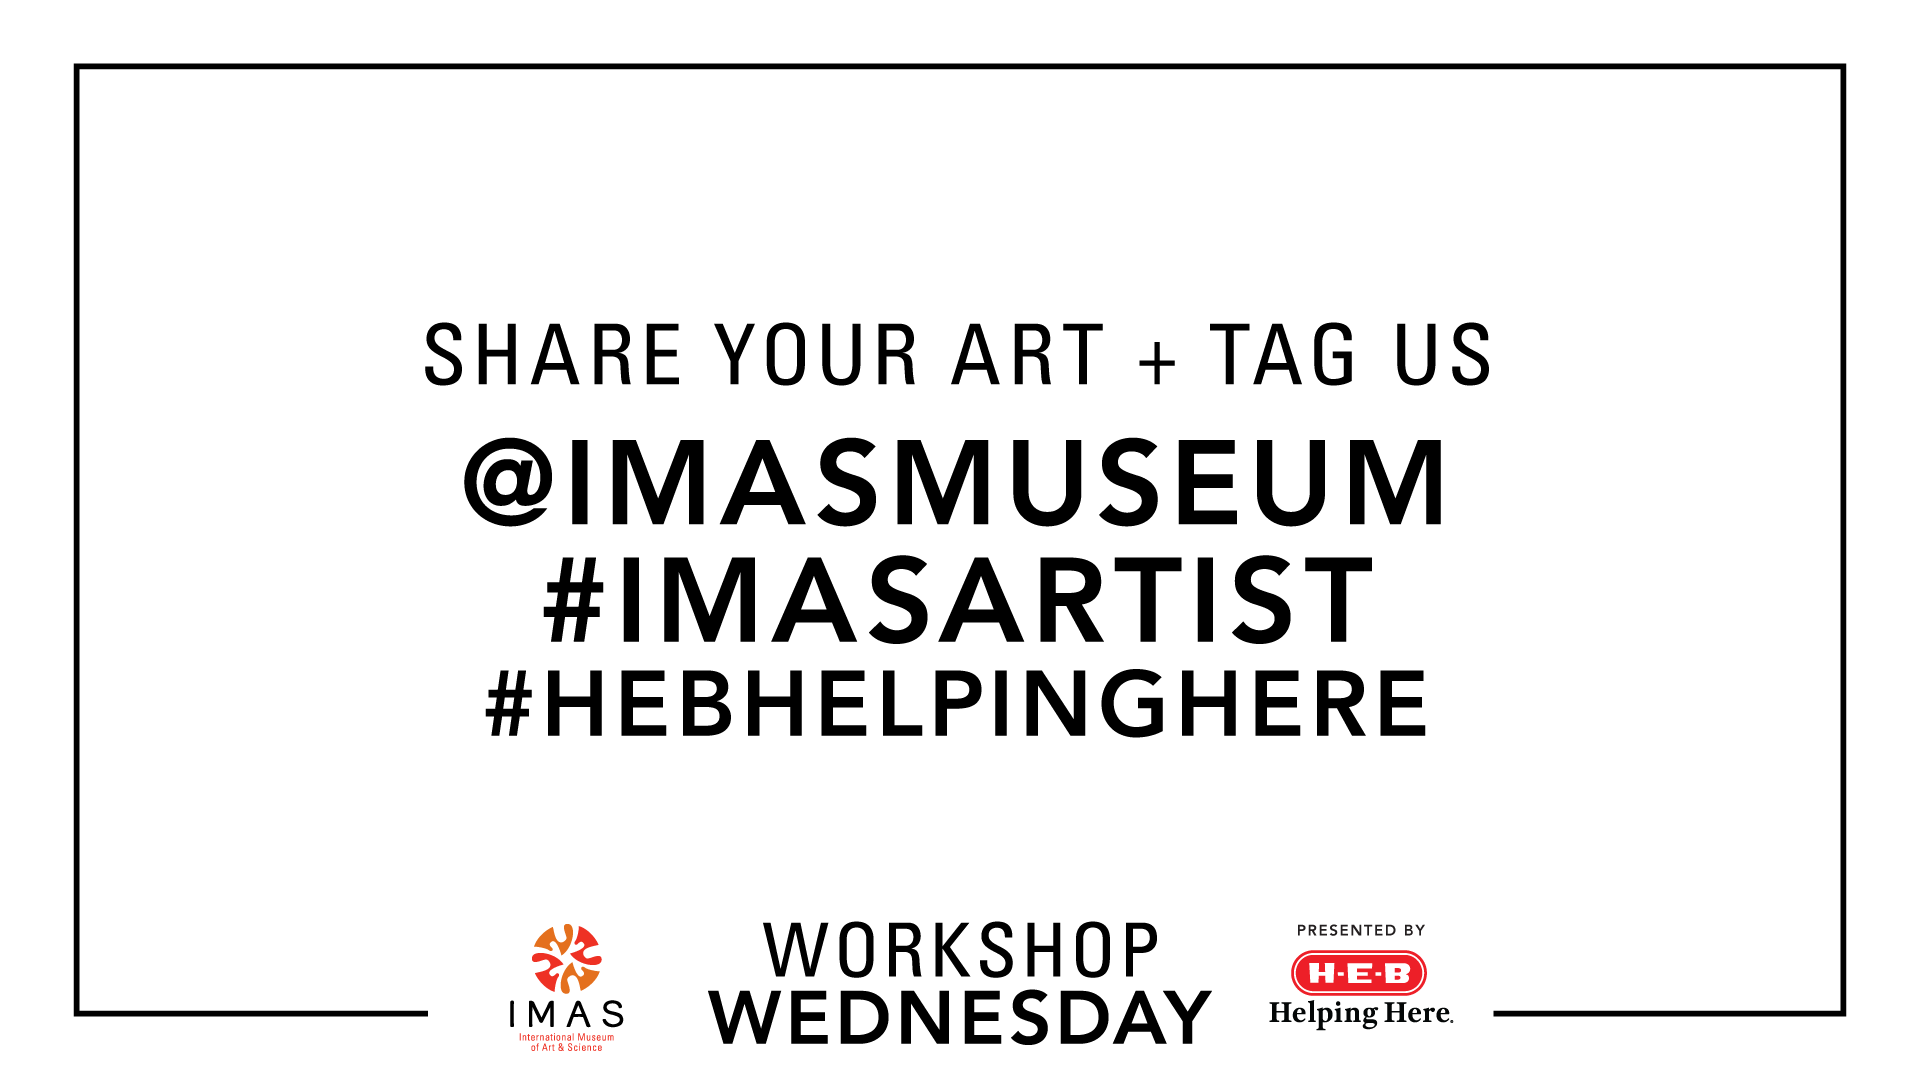 Workshop Wednesday HEB Social tags